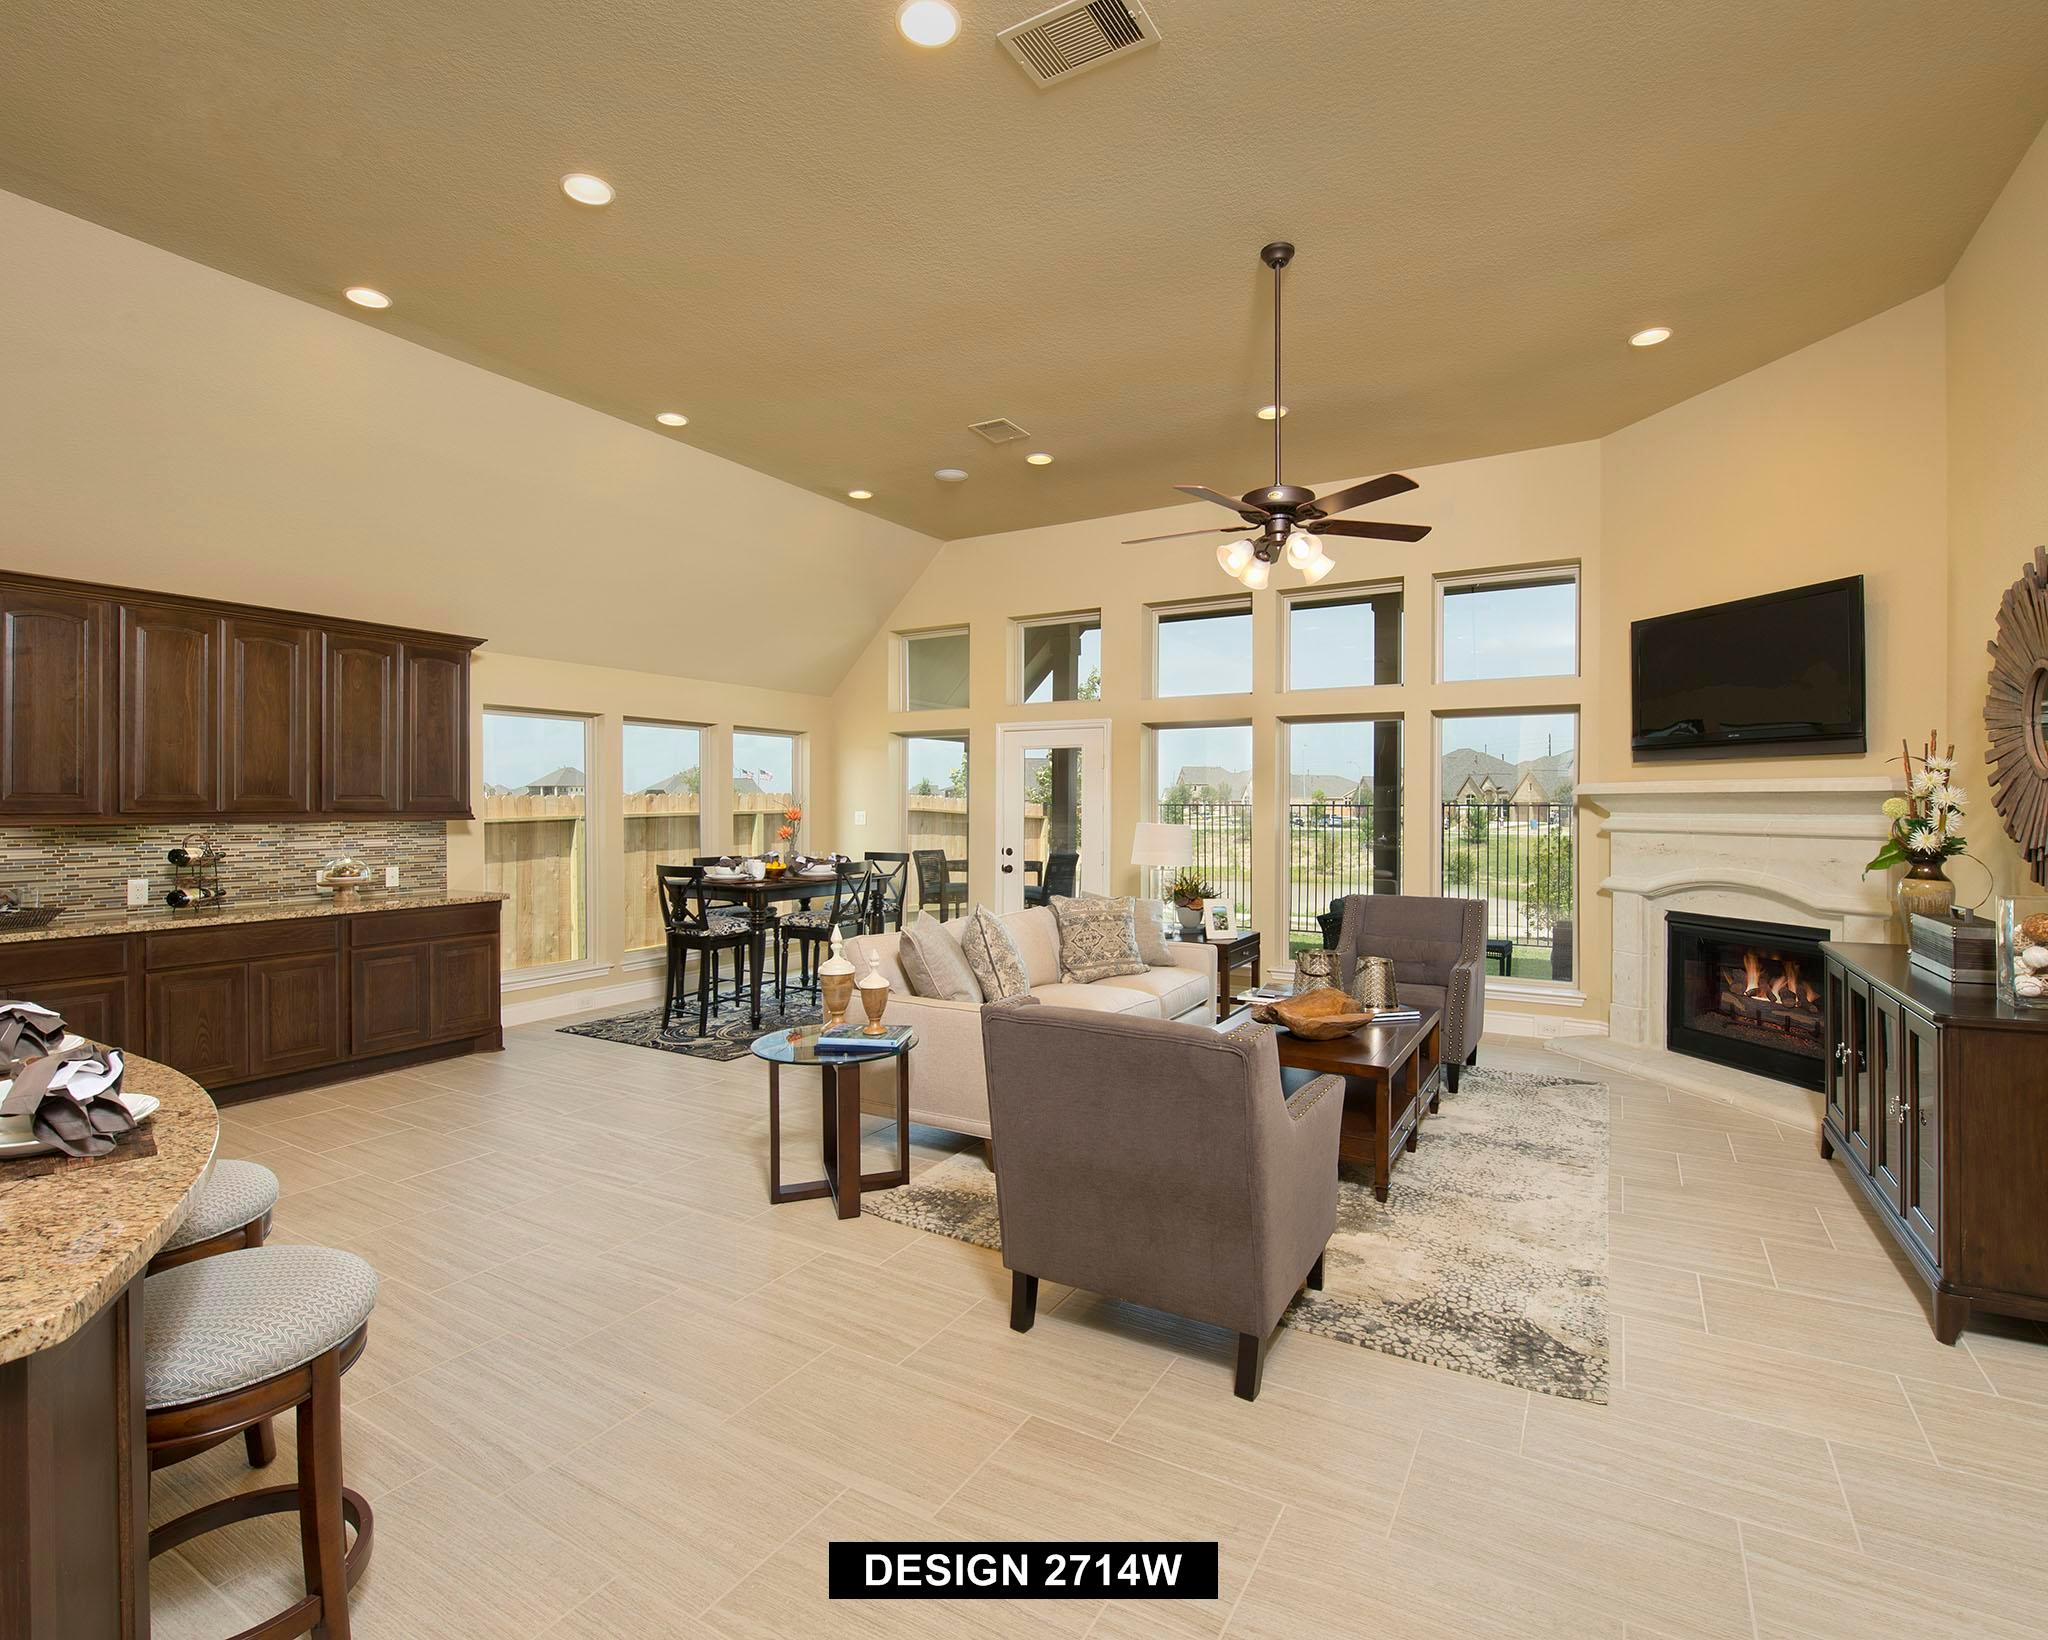 Living Area featured in the 2714W By Perry Homes in Houston, TX